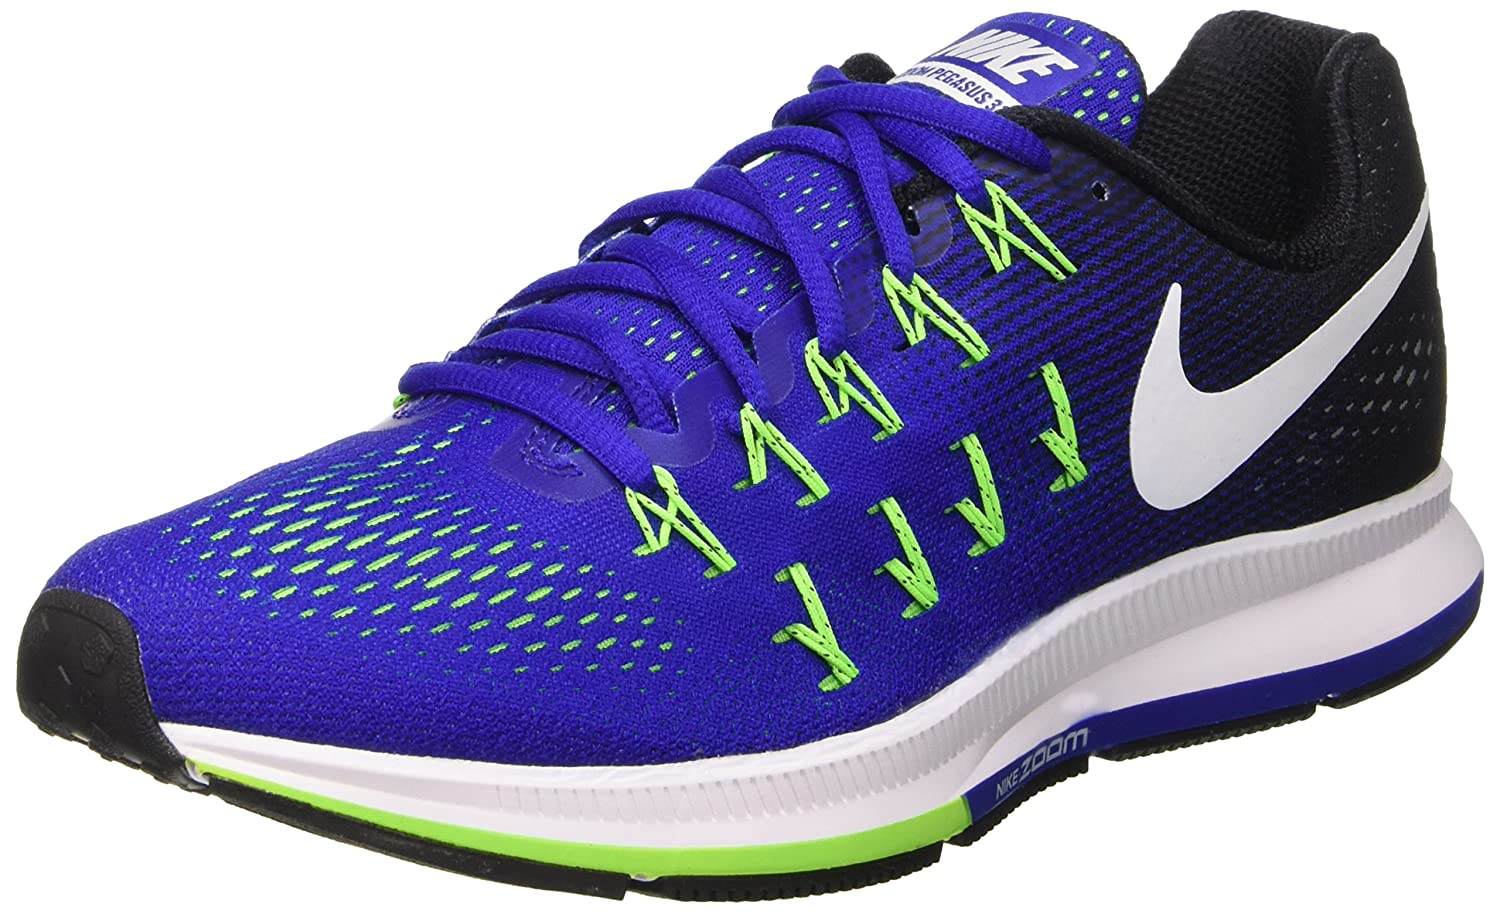 Nike Air Zoom Pegasus 33 Mens Running Trainers 831352 Sneakers Shoes (US 8.5, concord white black electric green 400)